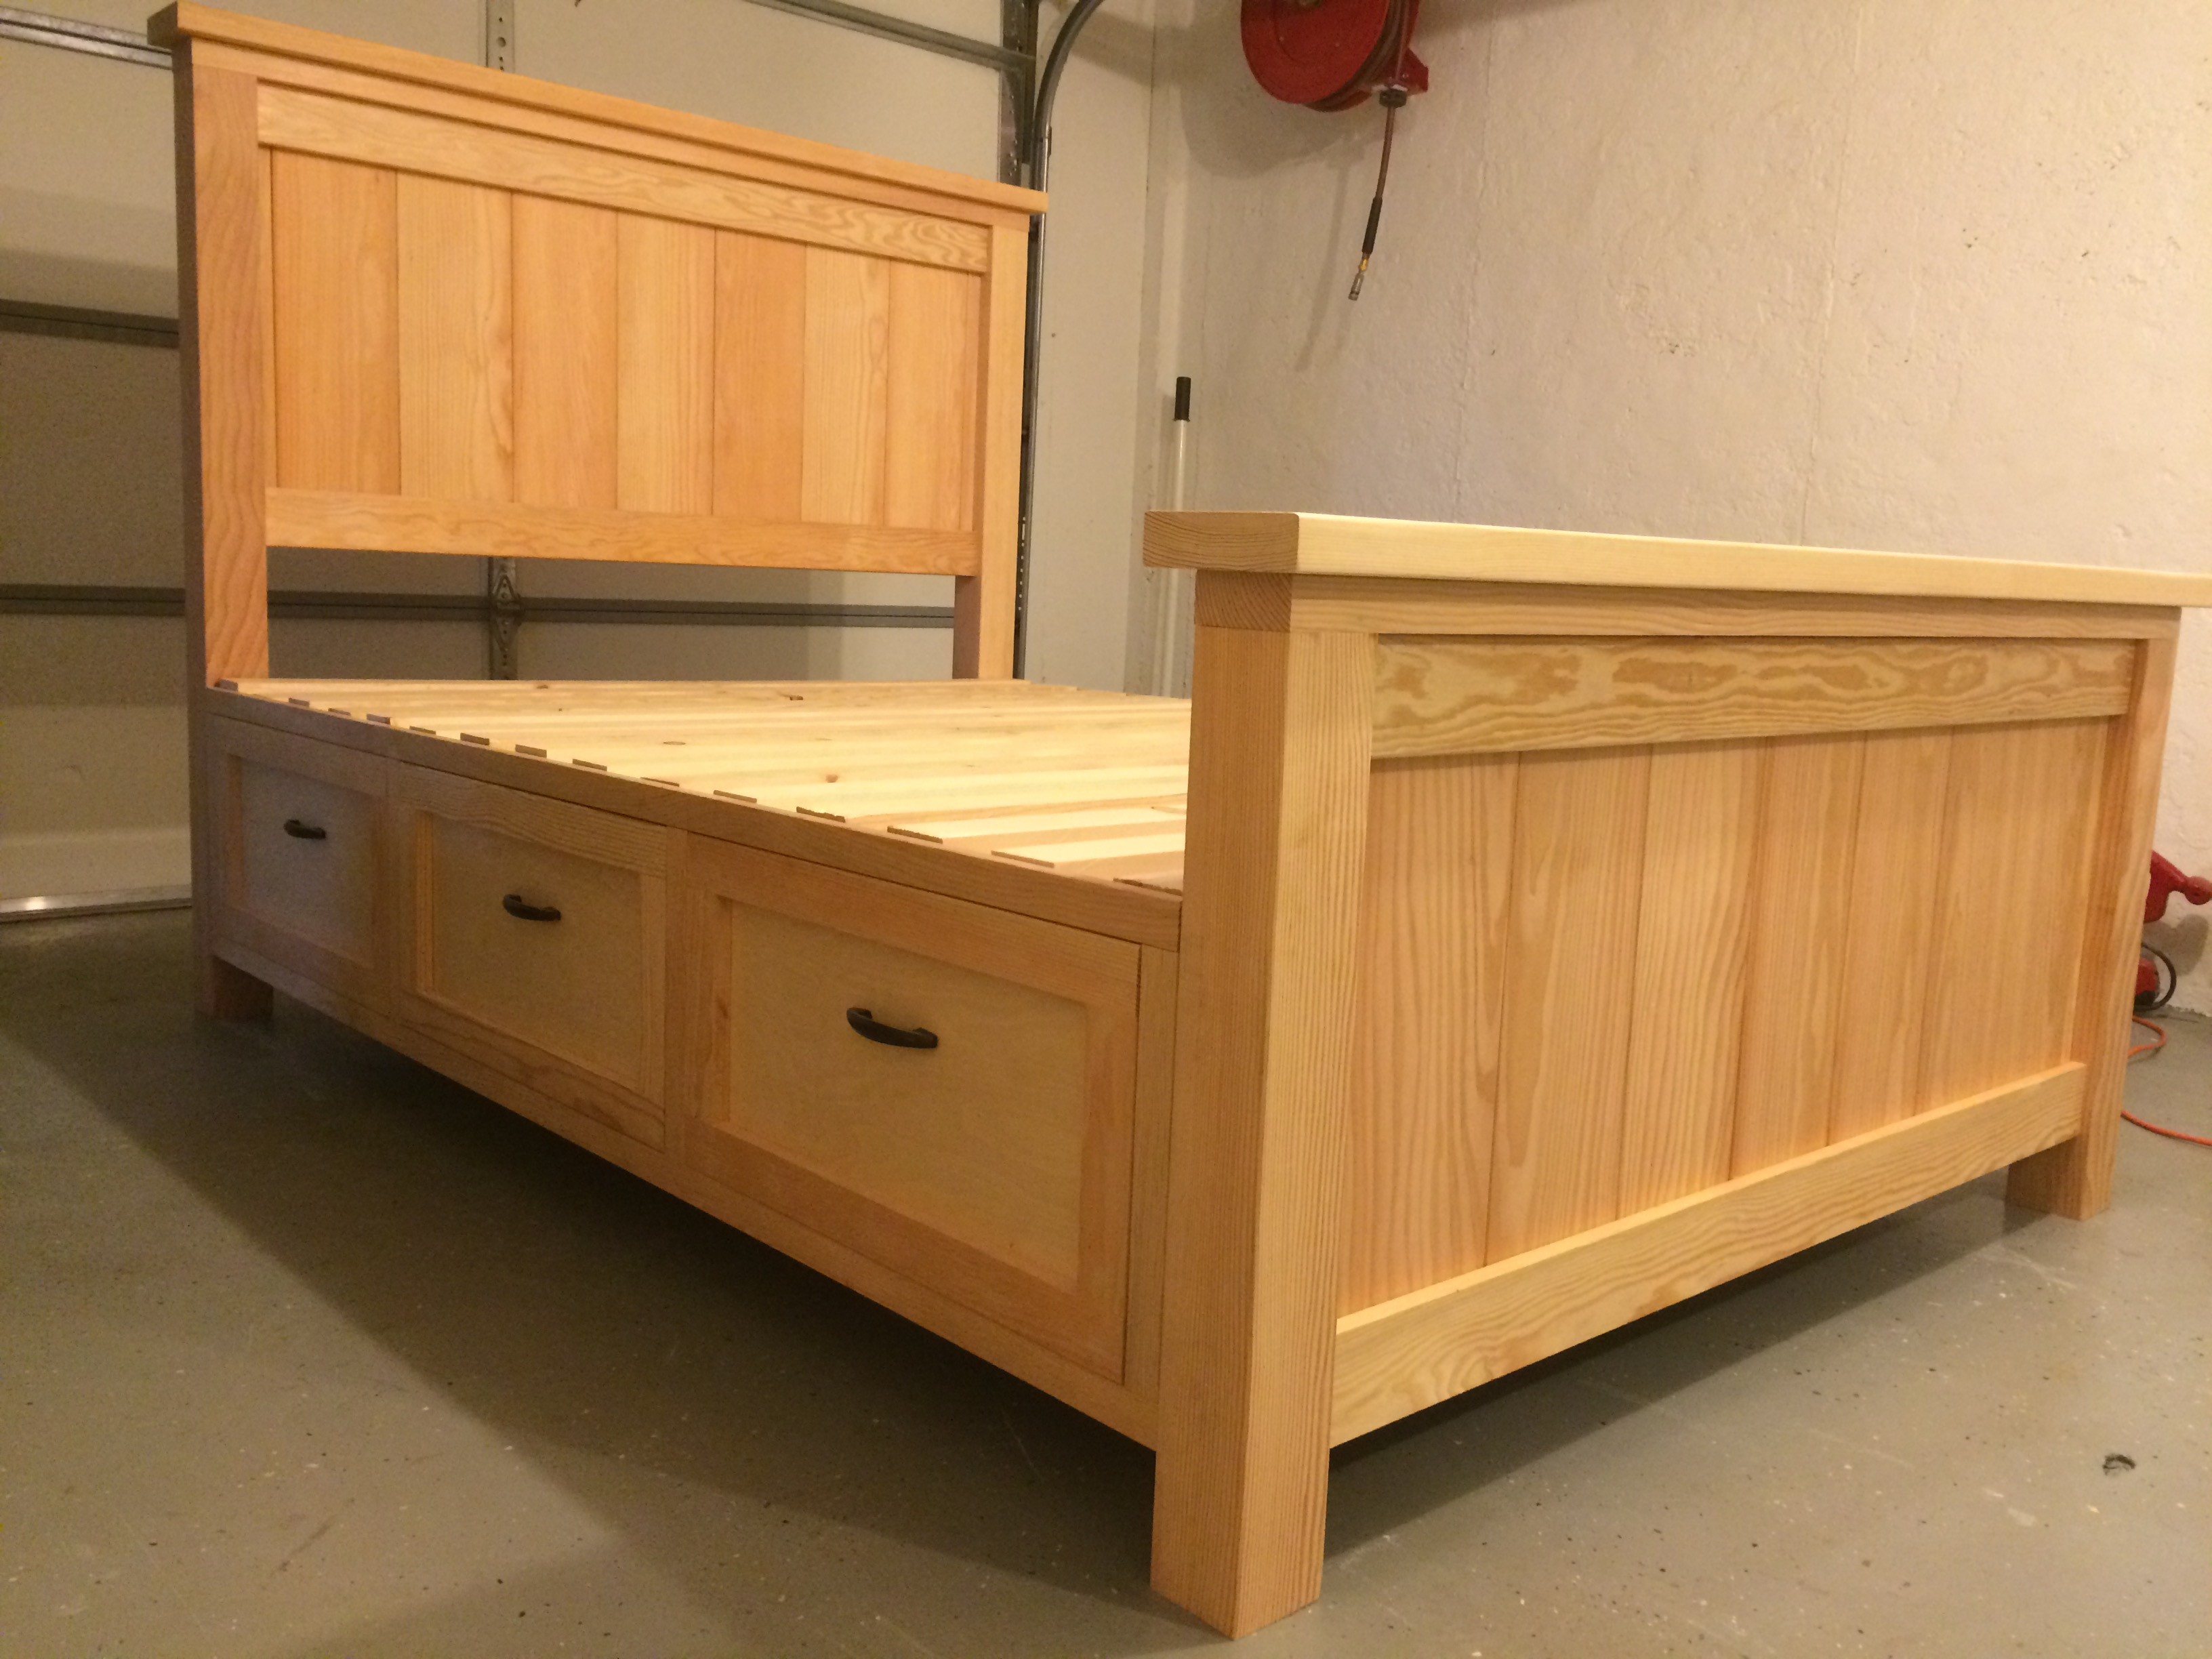 Best ideas about DIY Bed With Drawers . Save or Pin Ana White Now.